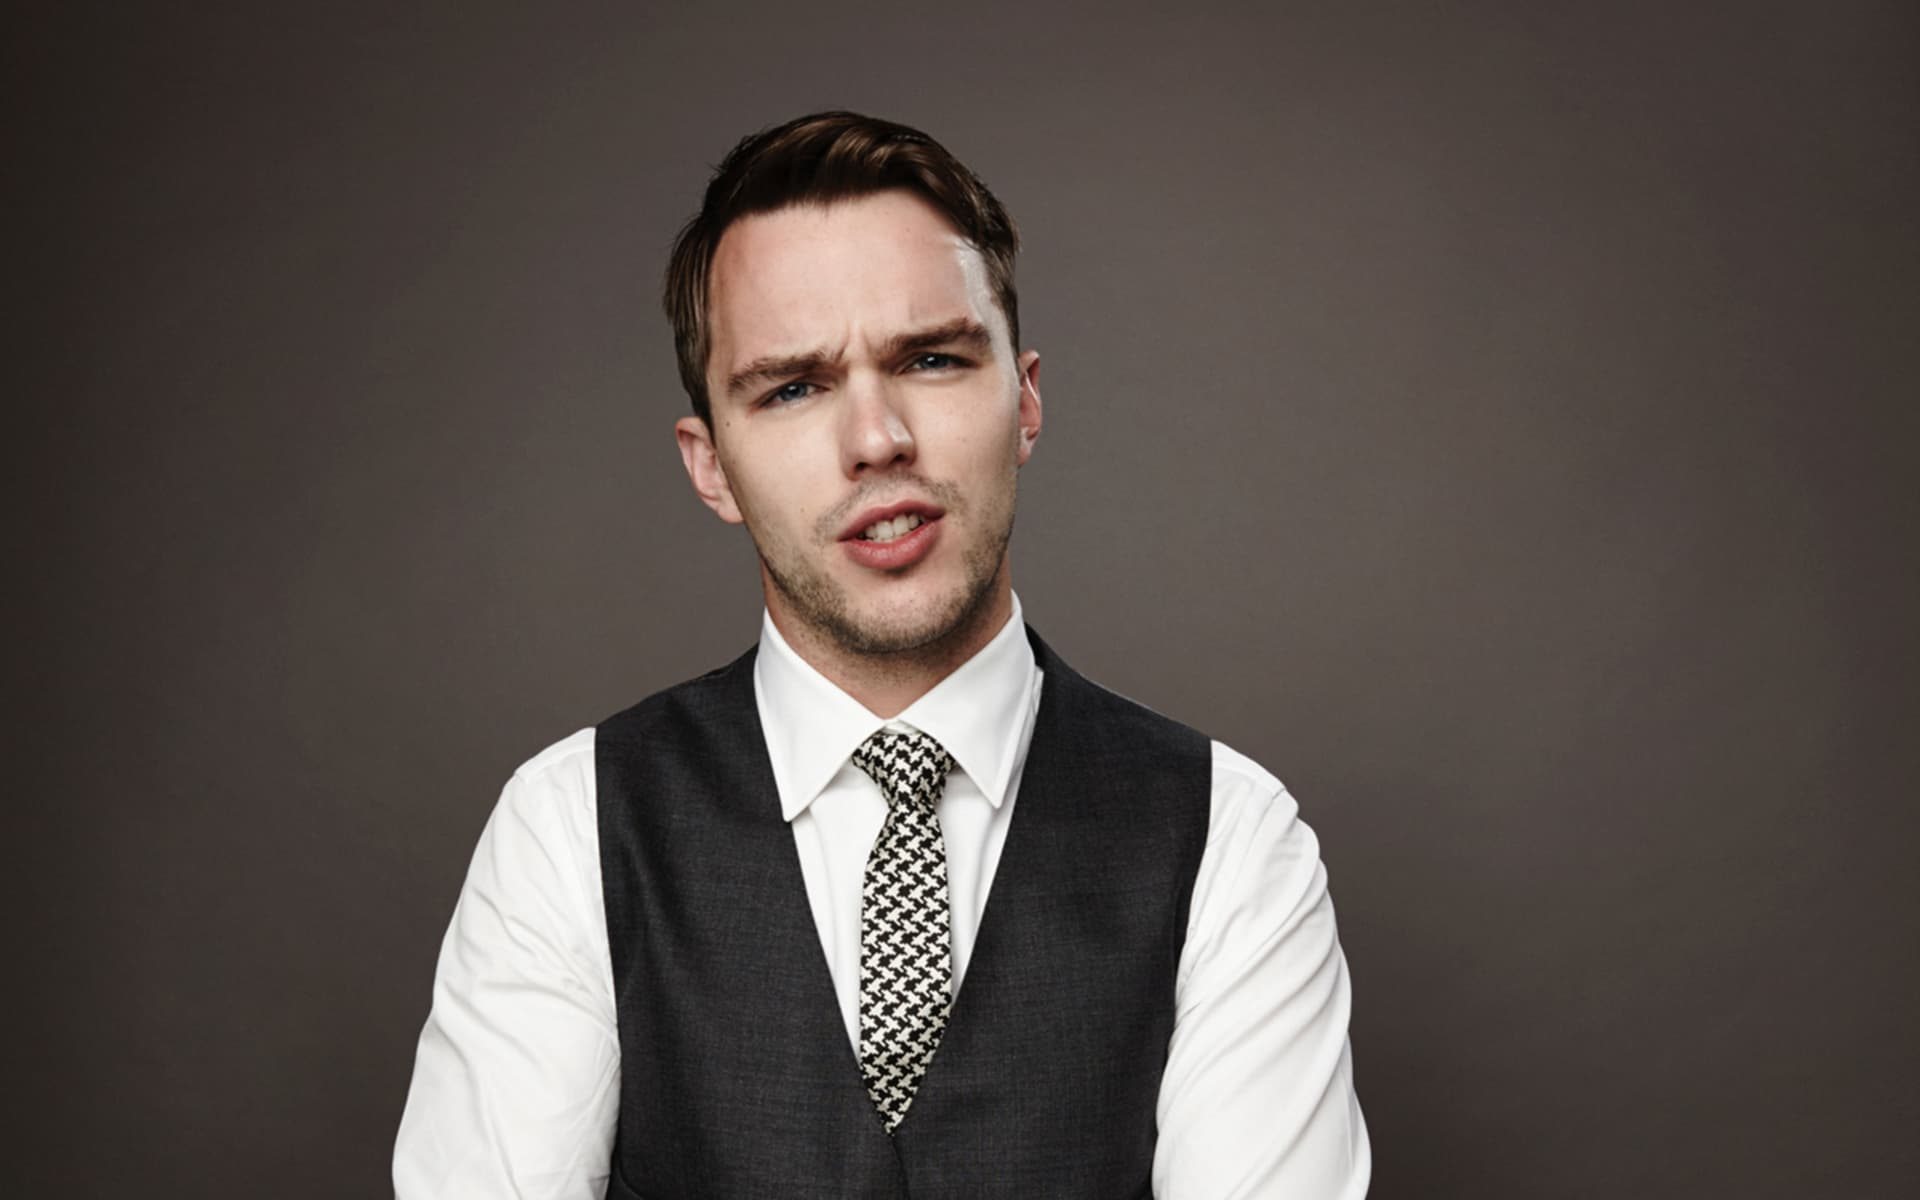 nicholas hoult wallpaper background - photo #25